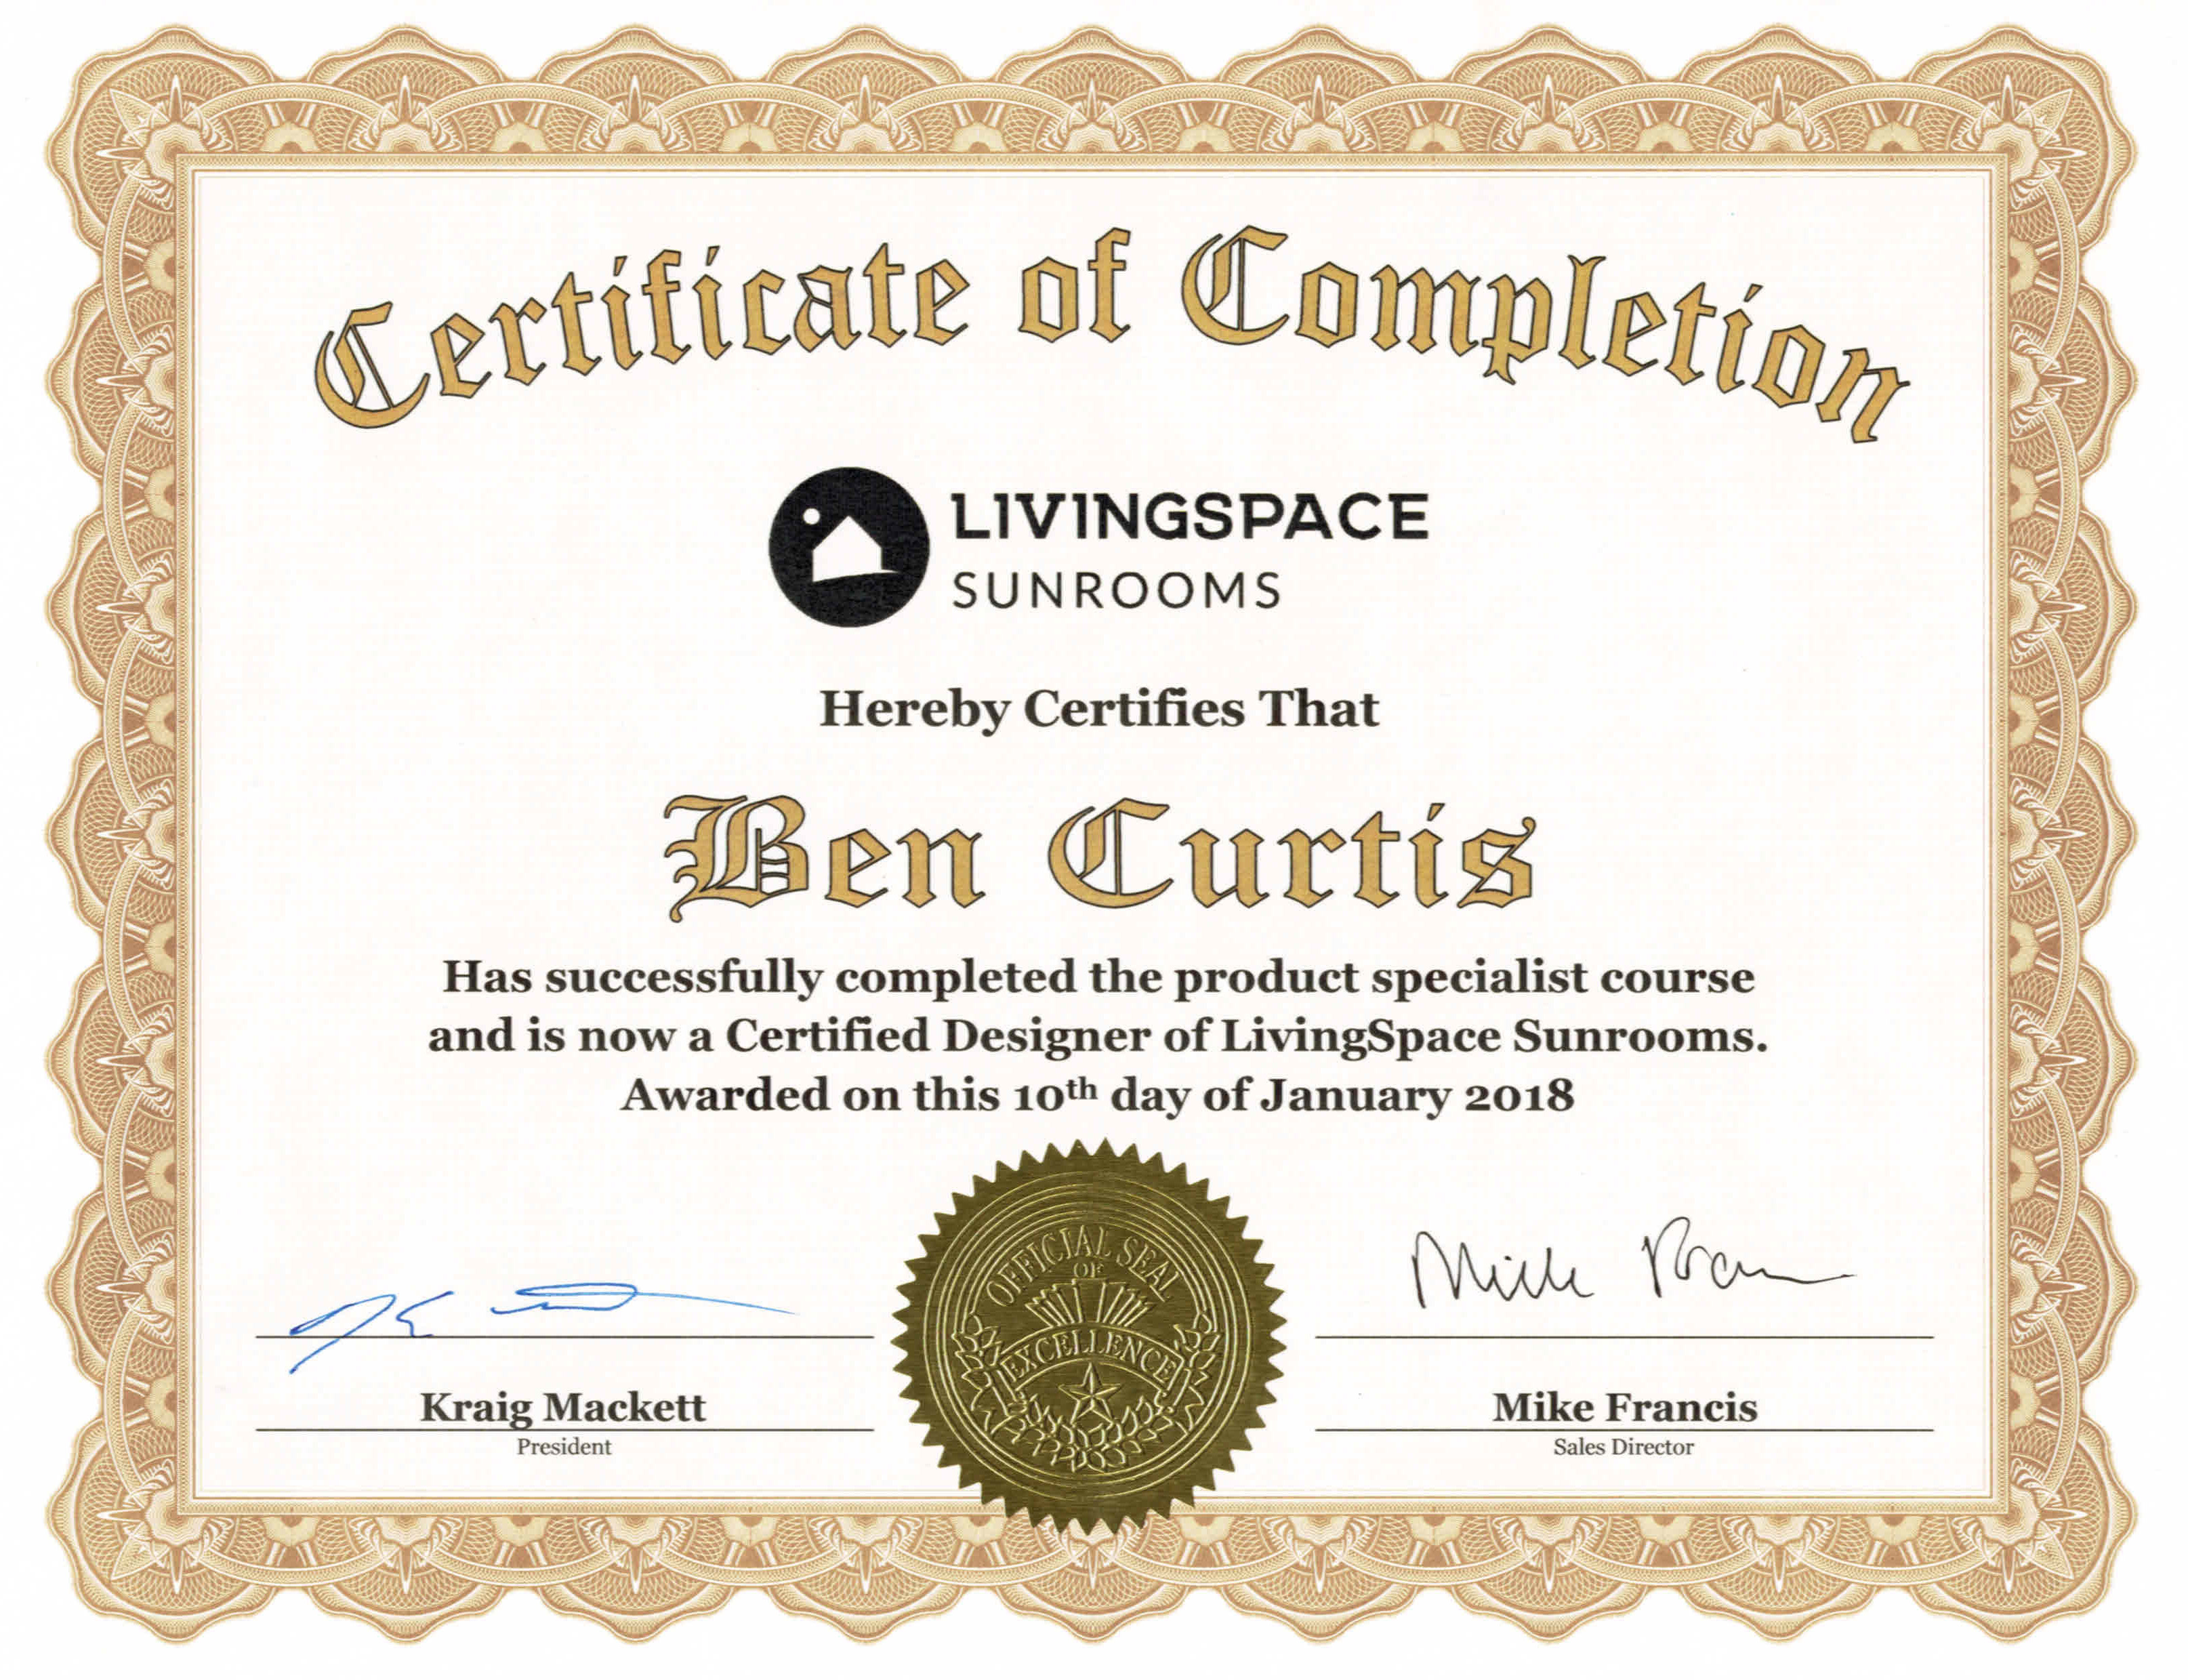 Certified Designer of Living Space Sunrooms